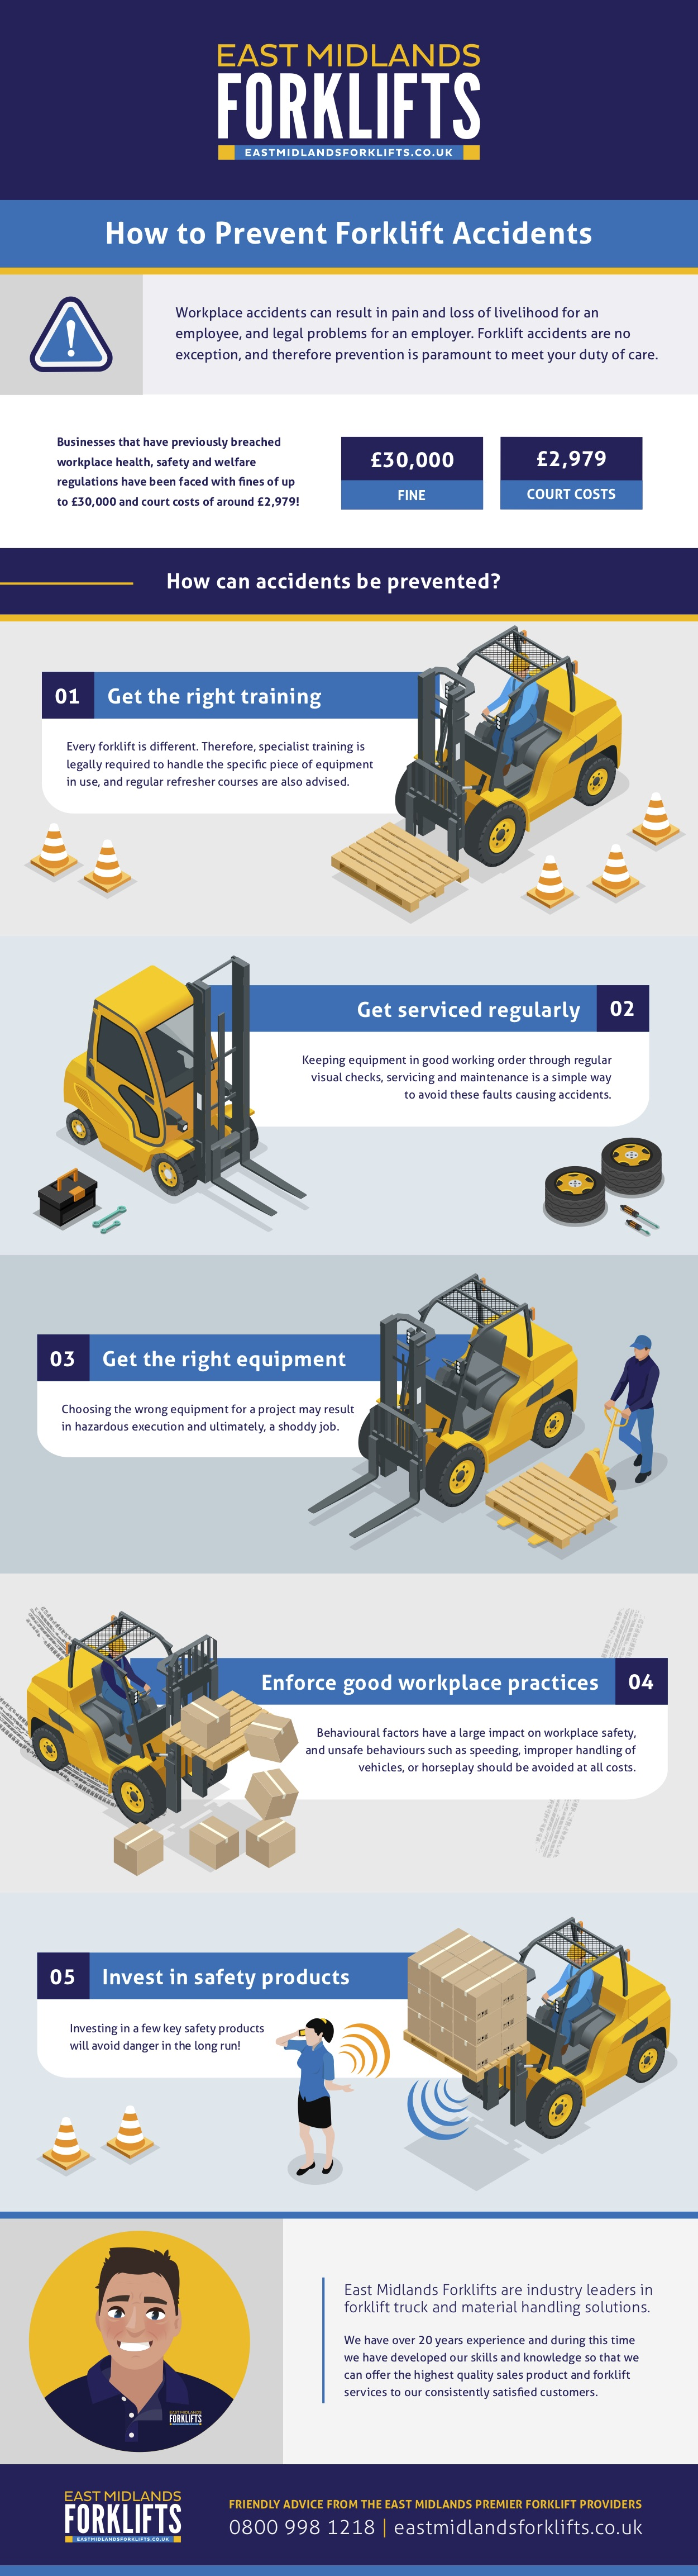 prevent forklift accidents infographic